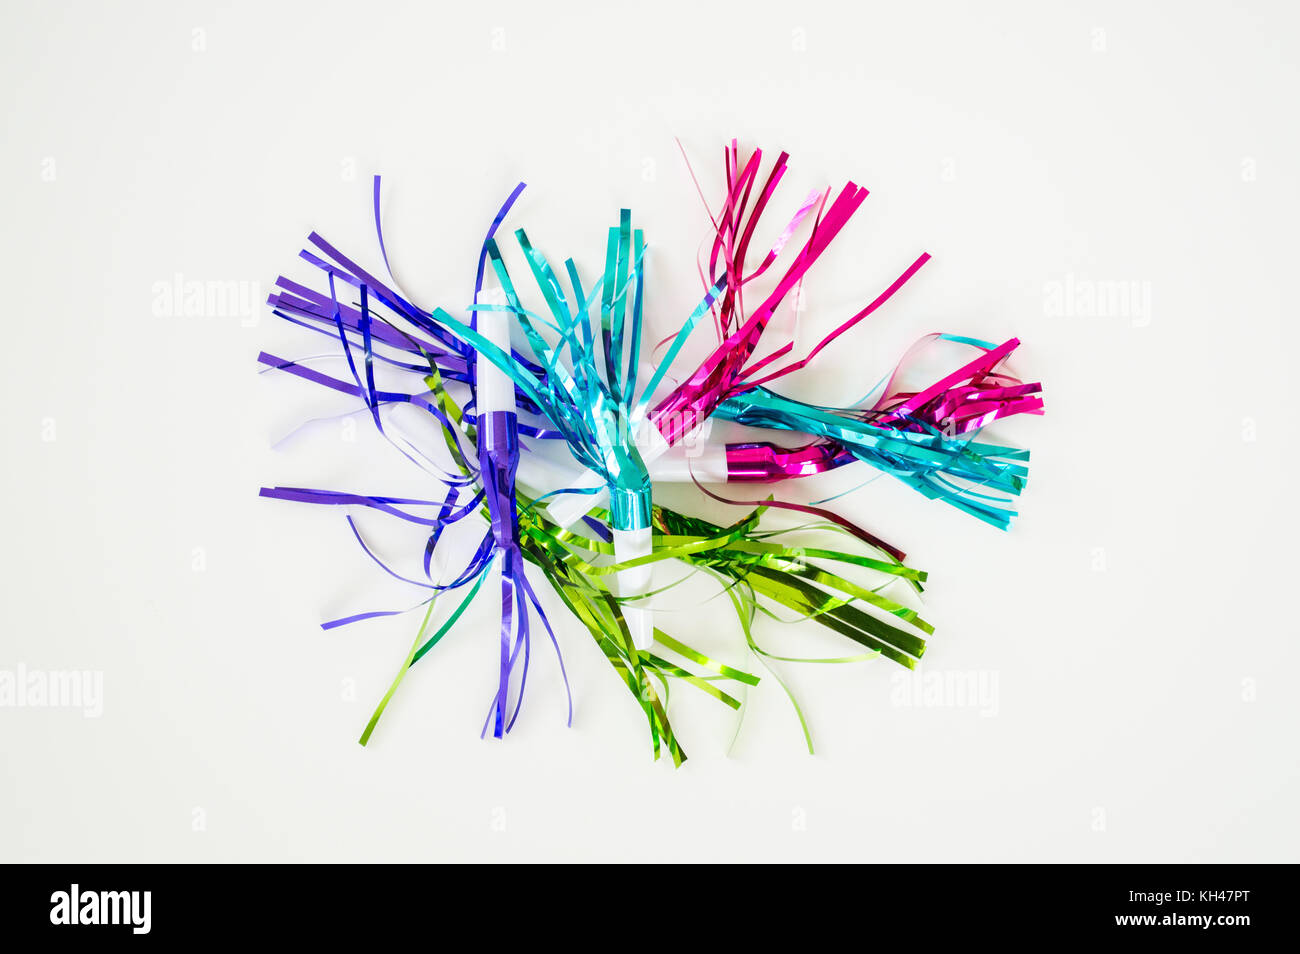 colorful party blowouts and noisemakers with streamers isolated on a solid background - Stock Image